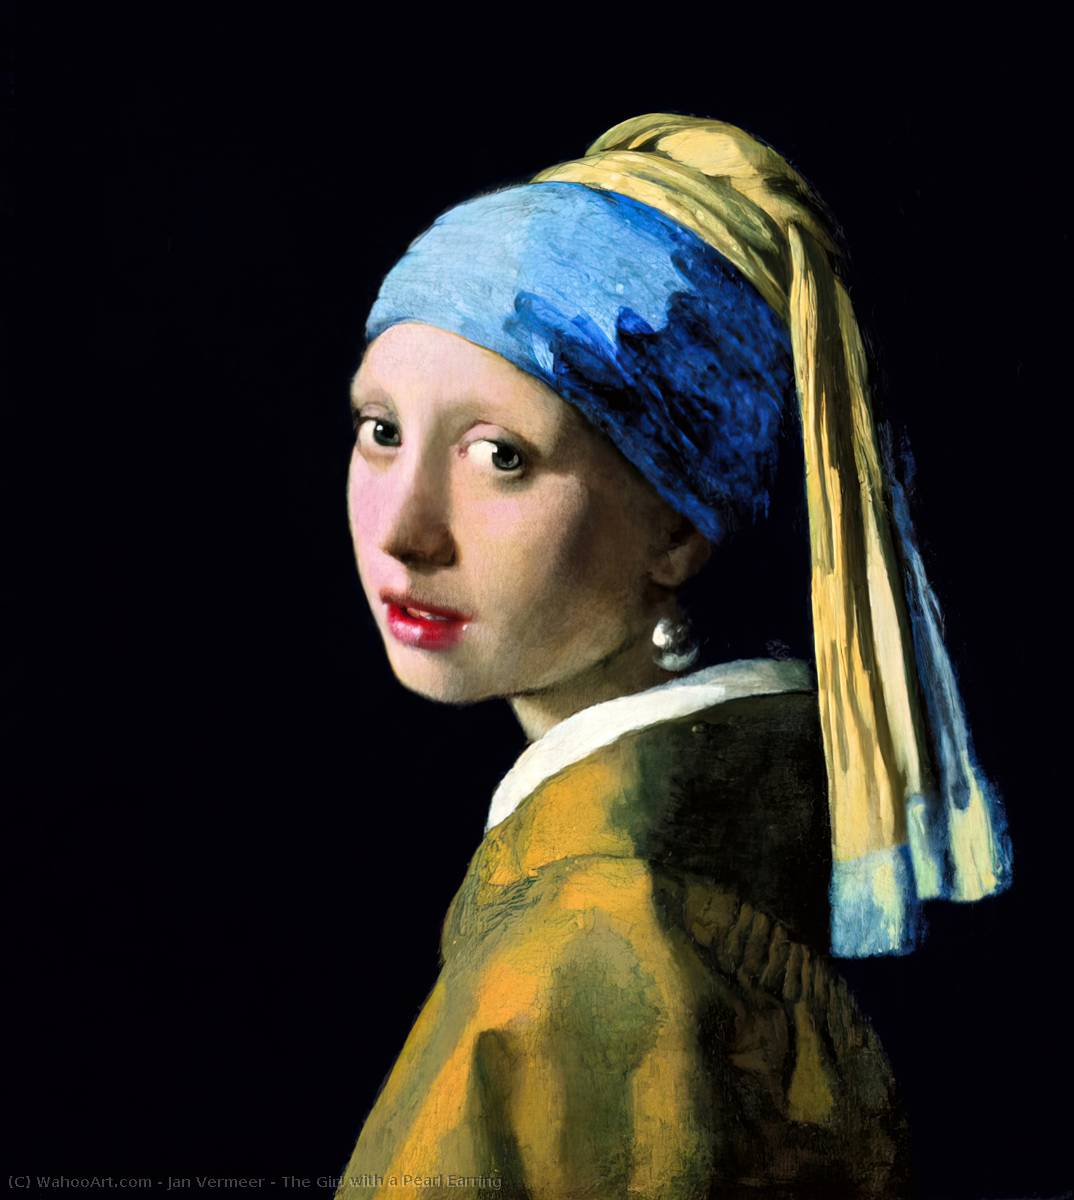 Buy Museum Art Reproductions : The Girl with a Pearl Earring by Jan Vermeer | Most-Famous-Paintings.com